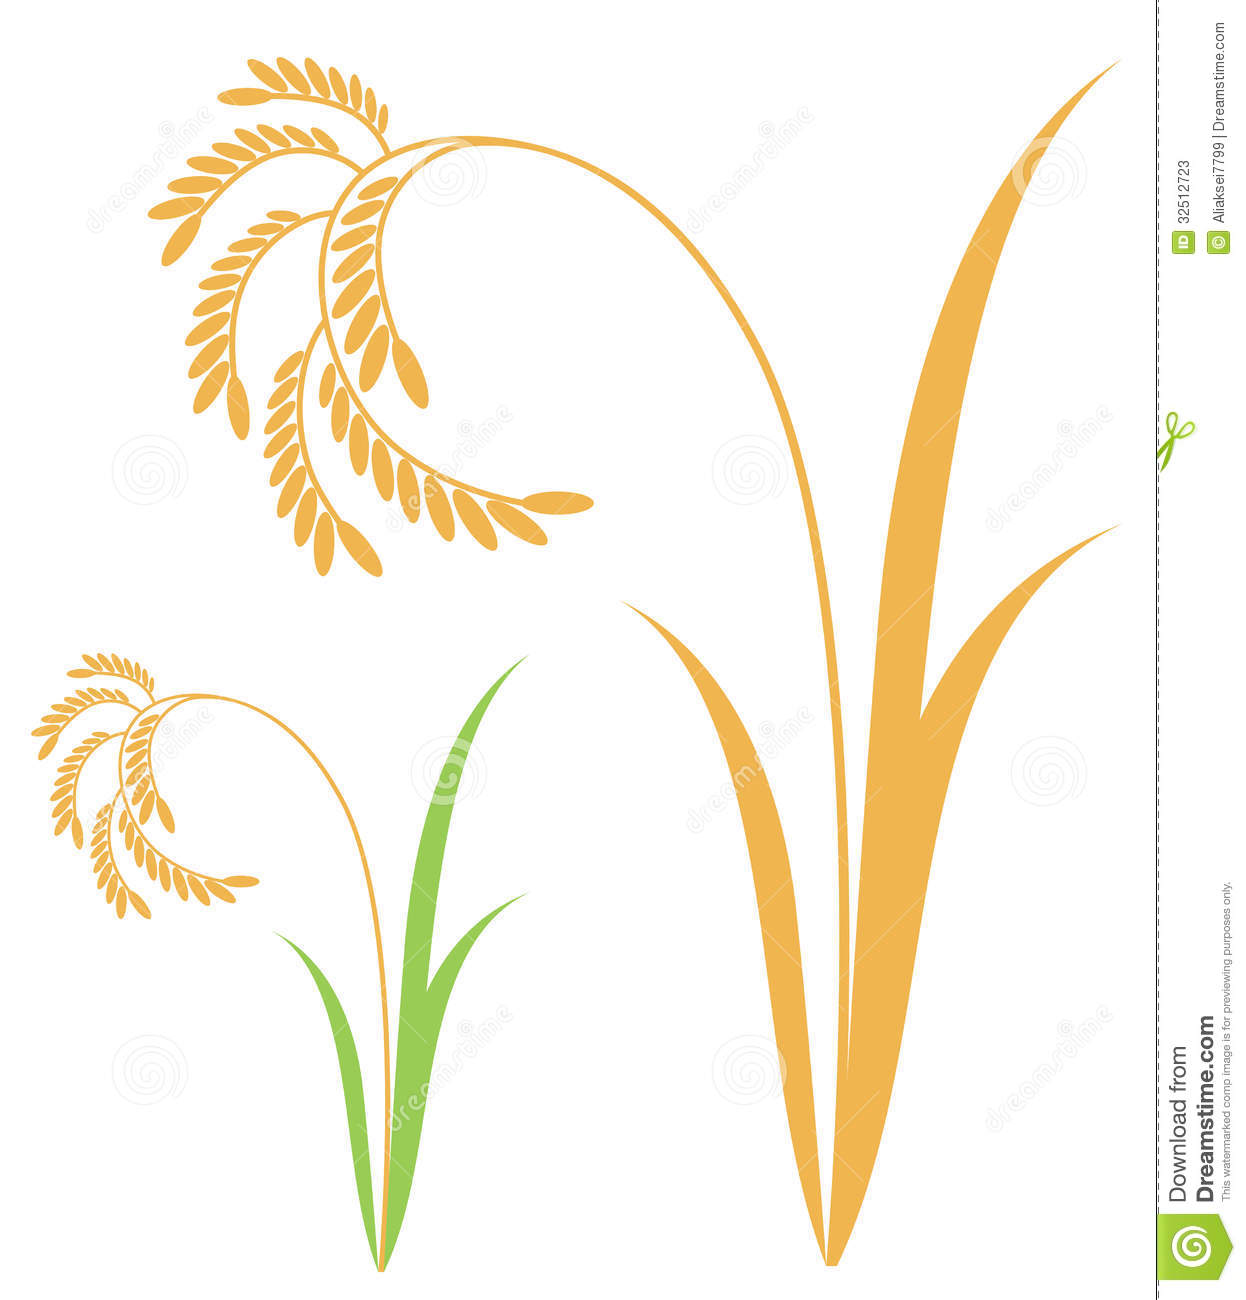 Paddy clipart - Clipground